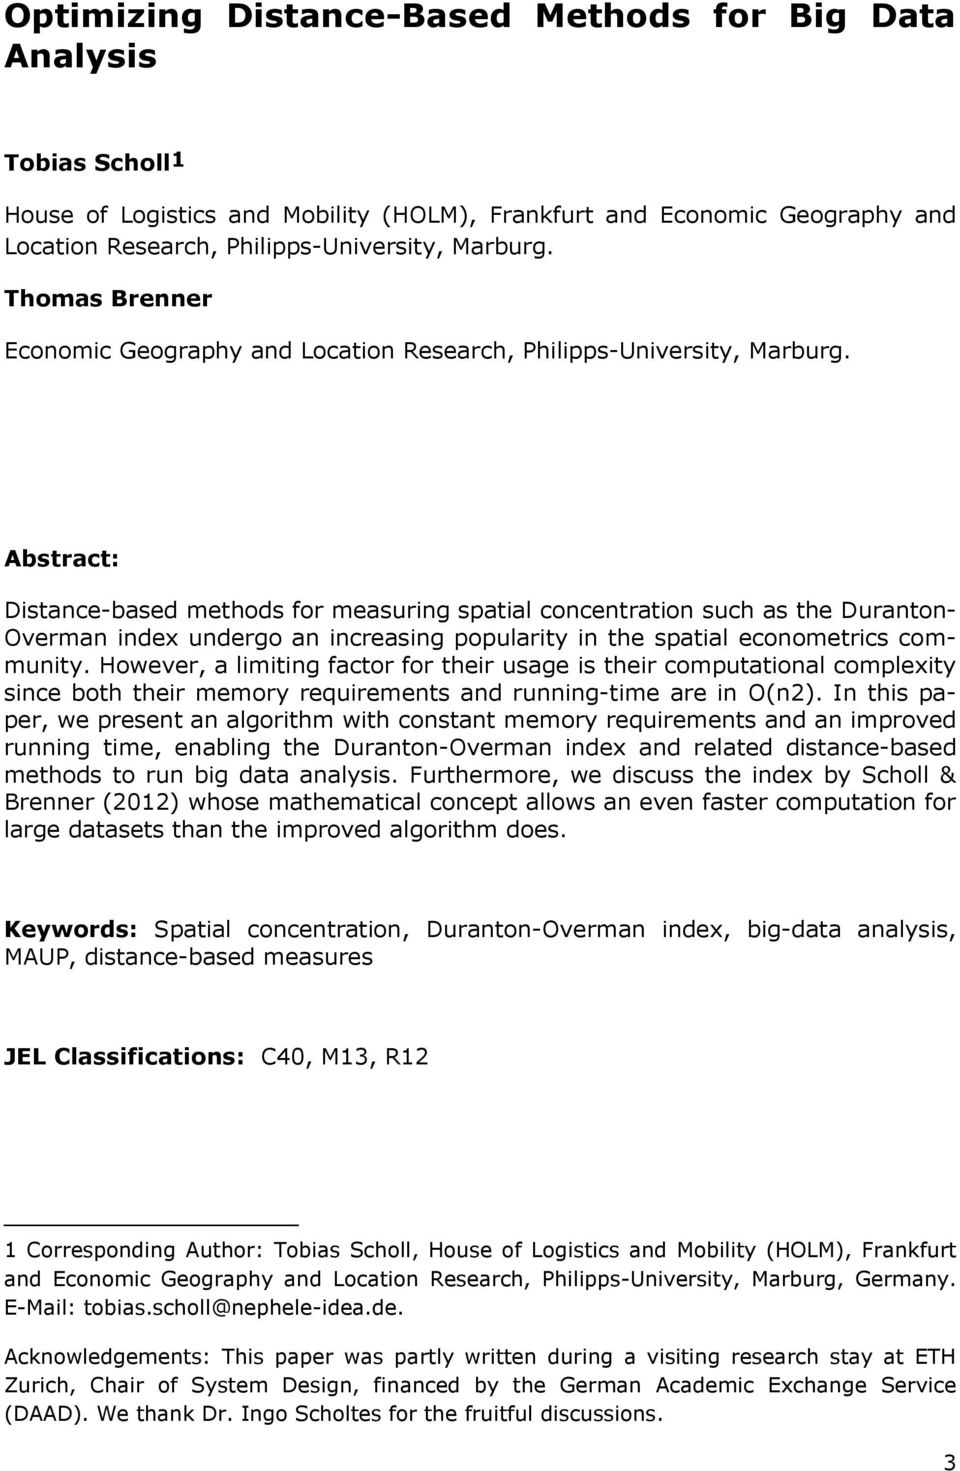 Abstract: Distance-based methods for measuring spatial concentration such as the Duranton- Overman index undergo an increasing popularity in the spatial econometrics community.